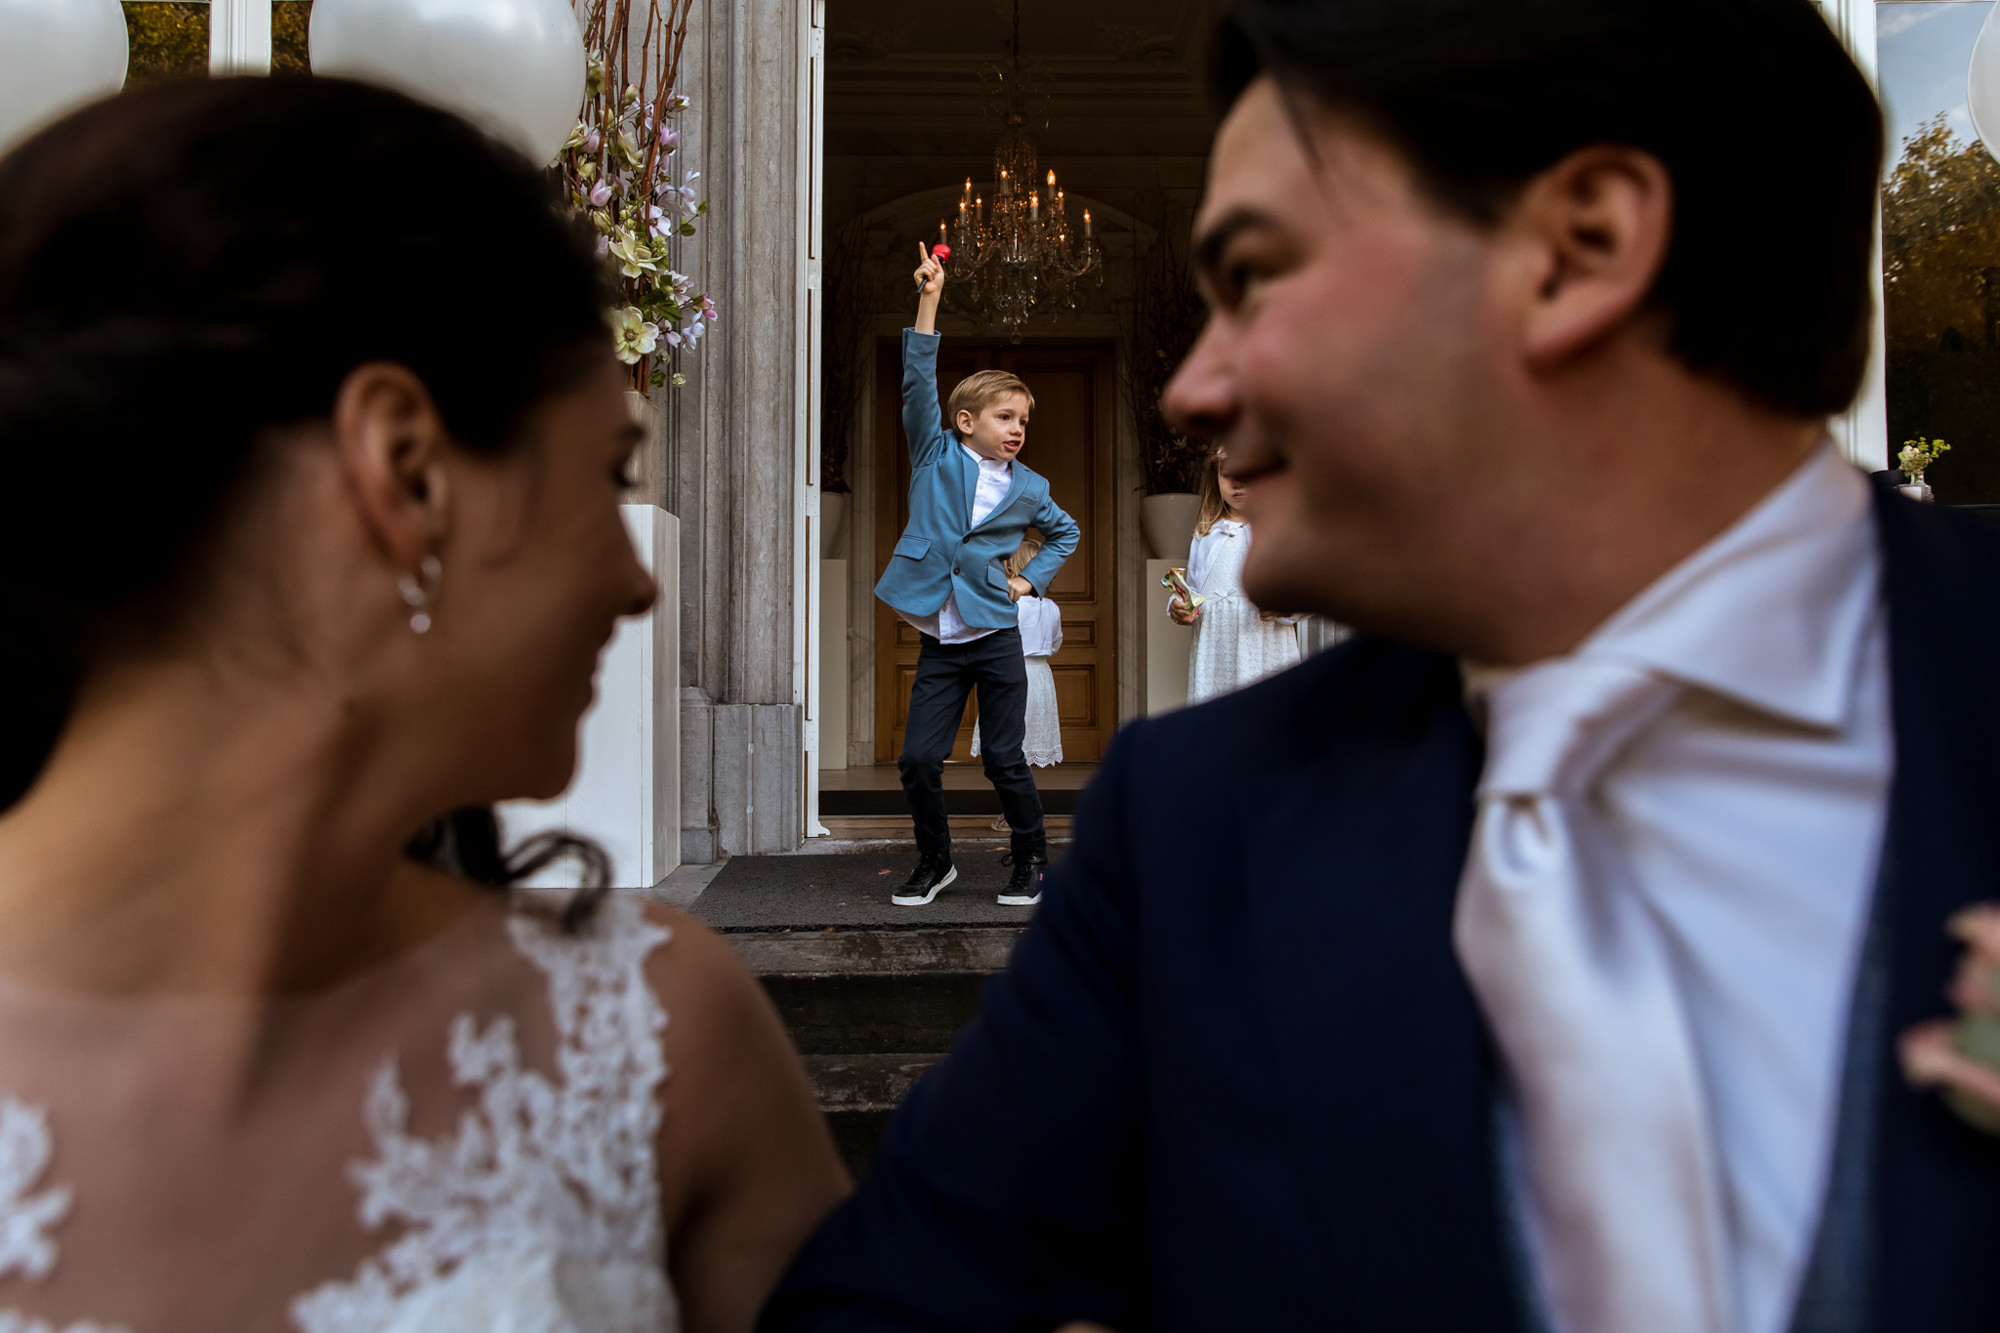 Kid dancing framed by bride and groom photo by Fotobelle: Isabelle Hattink